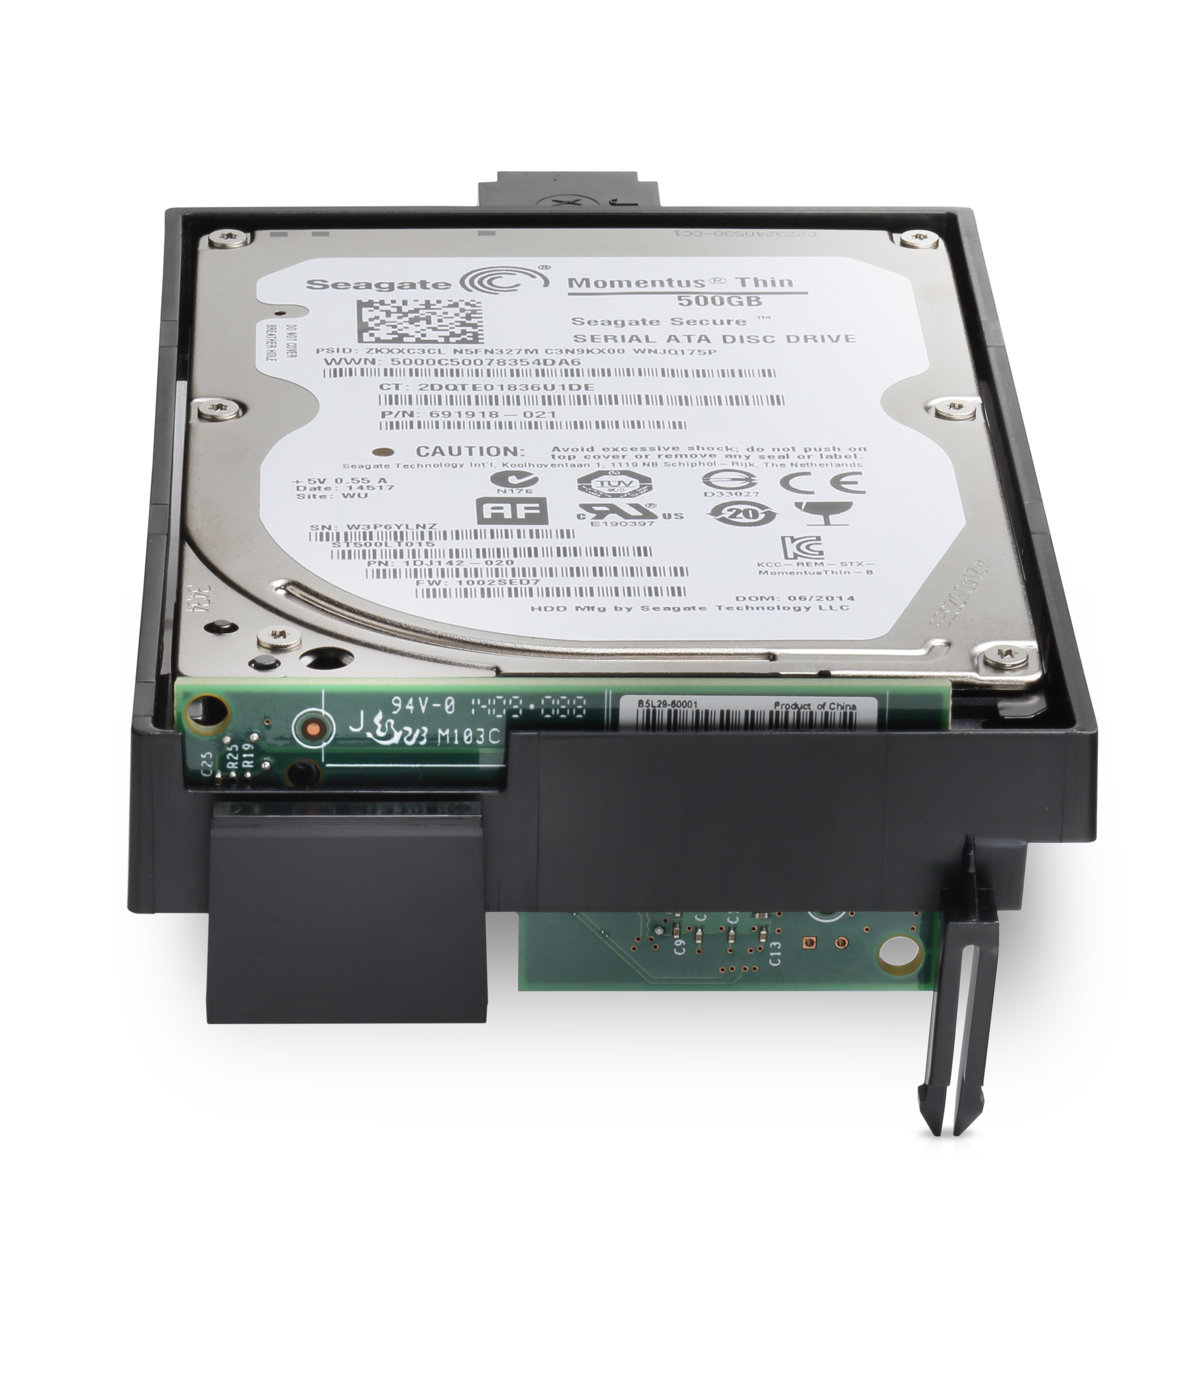 Product Hp High Performance Secure Hard Disk Drive Hardisk Internal Pc 500gb Seagate Slide 1 Of 2show Larger Image